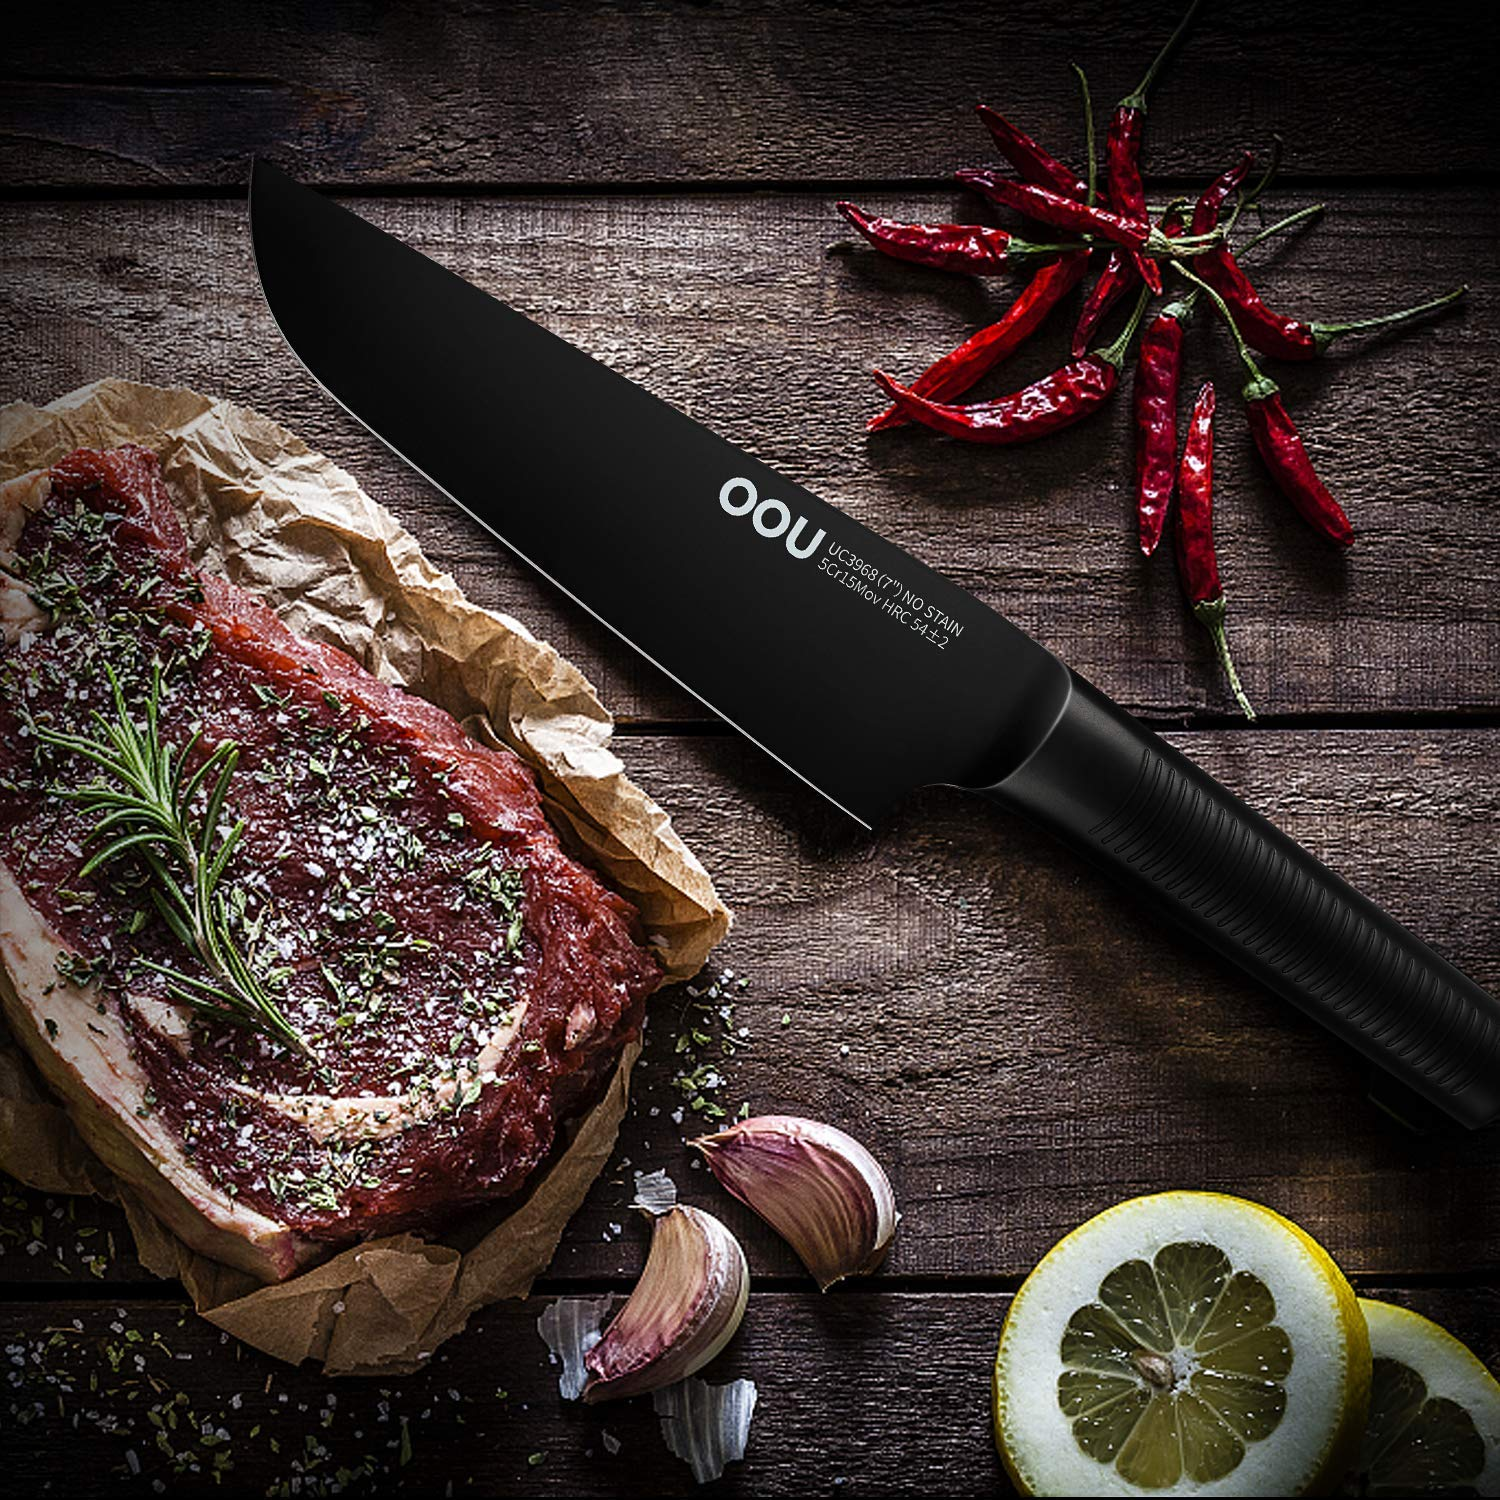 Chef Knife, OOU 7 inch Pro Kitchen Knife, High Carbon Stainless Steel Chef's Knives, Ultra Sharp Edge Cooking Knife, Advanced BO Oxidation Design, Great for Home Kitchen and Restaurant, FDA Certified by OOU! (Image #6)